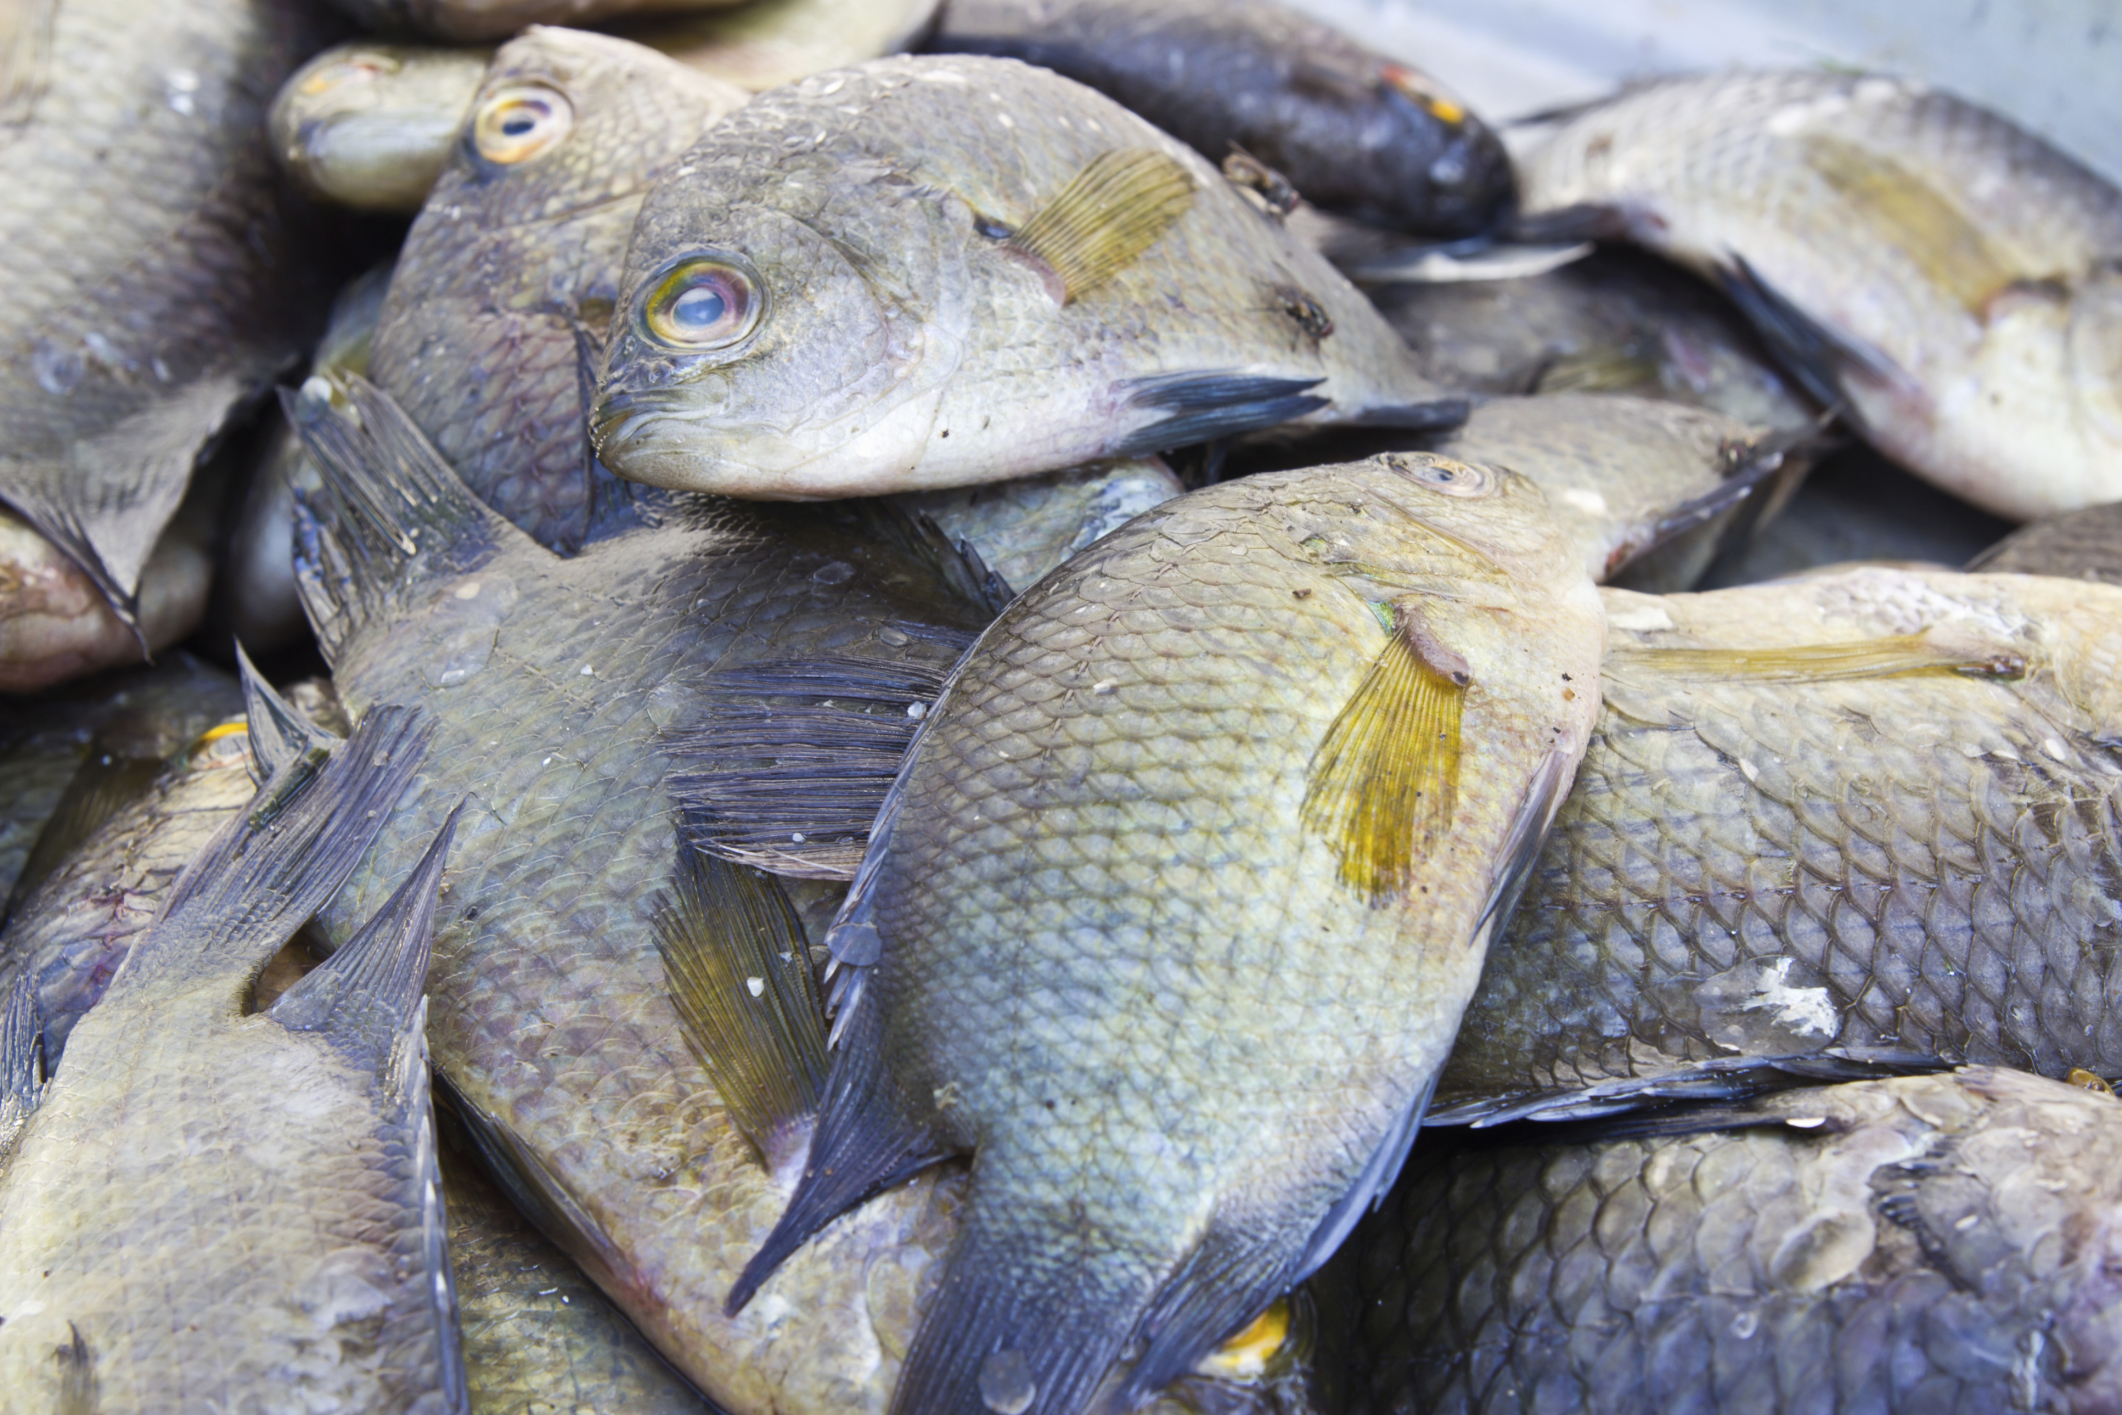 Difference between male female tilapia sciencing for What type of fish is tilapia